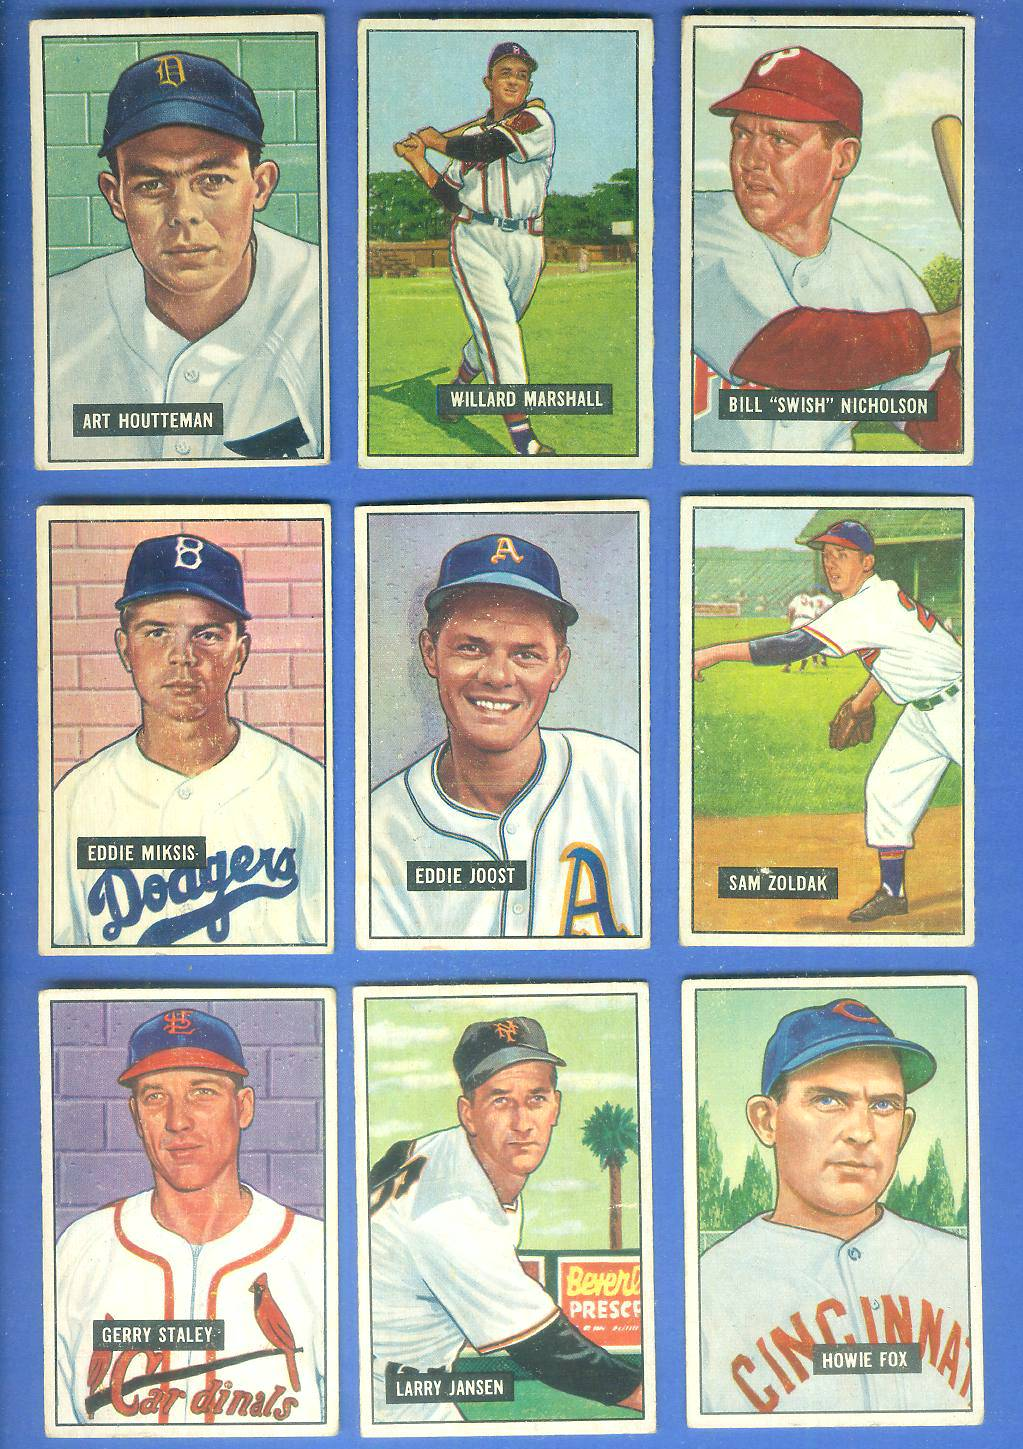 1951 Bowman #162 Larry Jansen [#x] (New York Giants) Baseball cards value